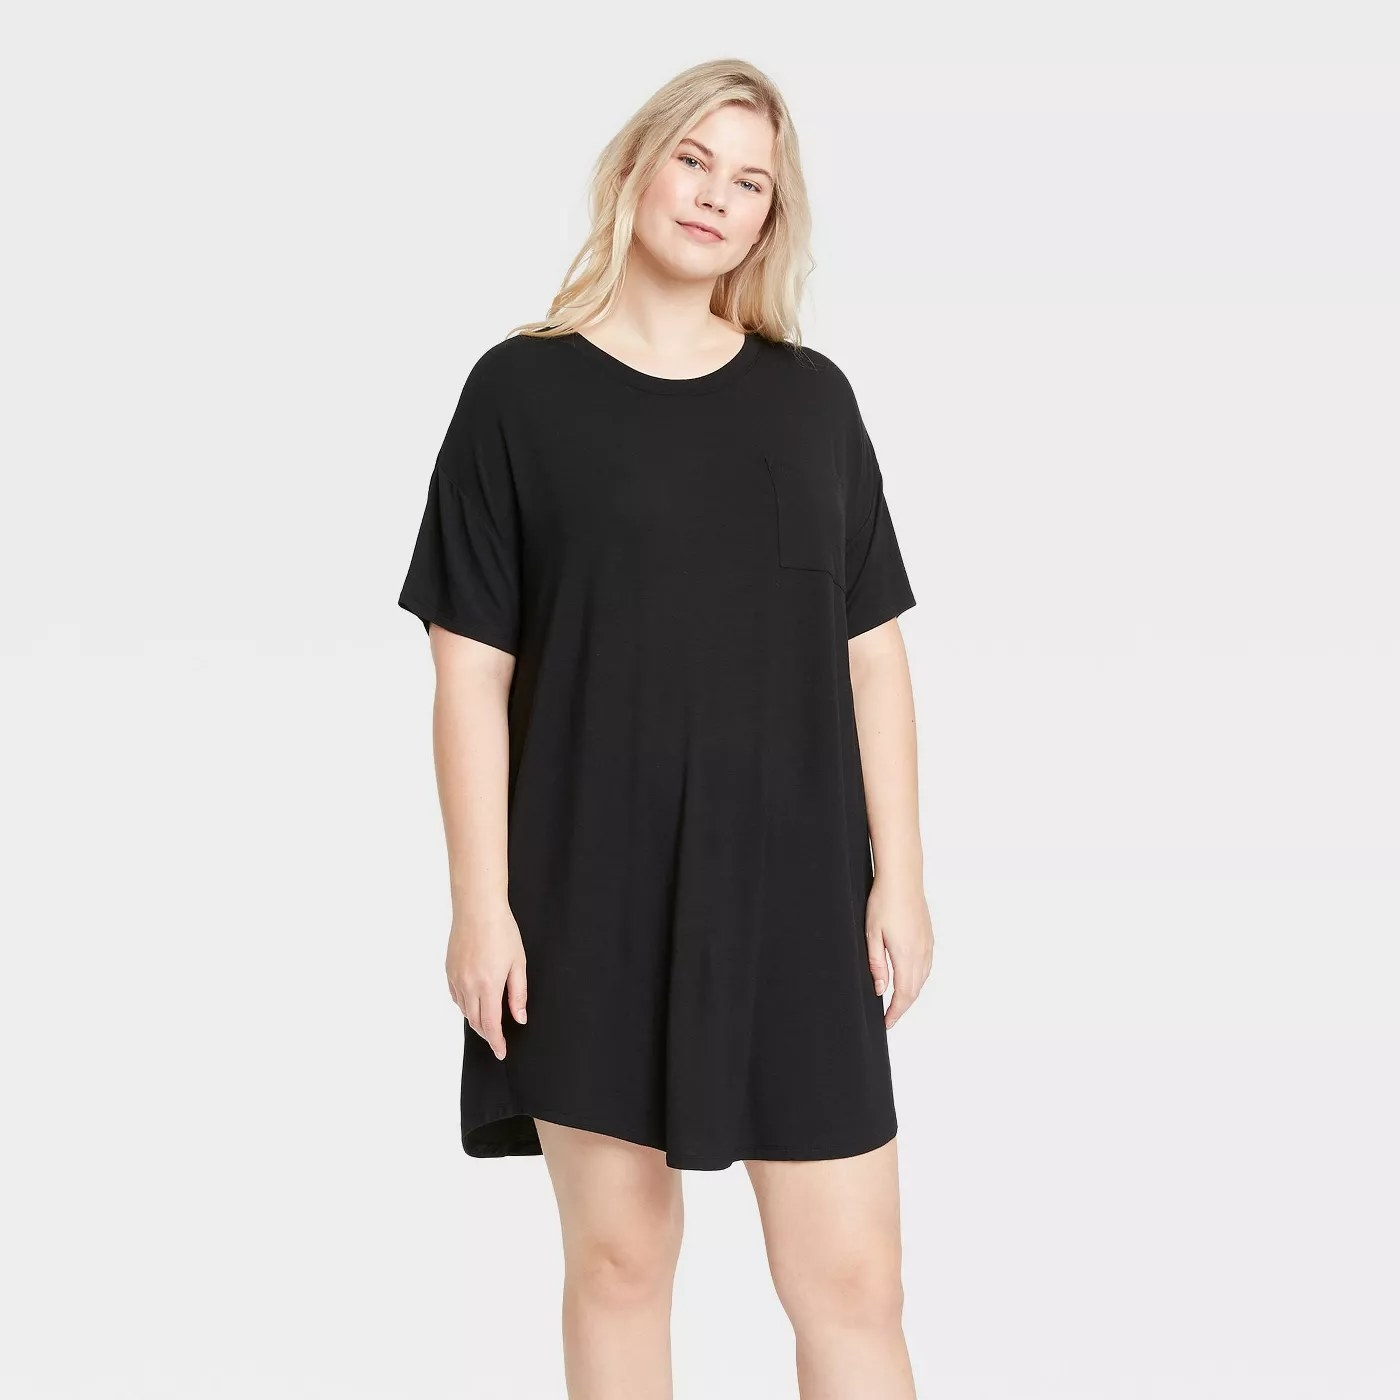 The black T-shirt dress